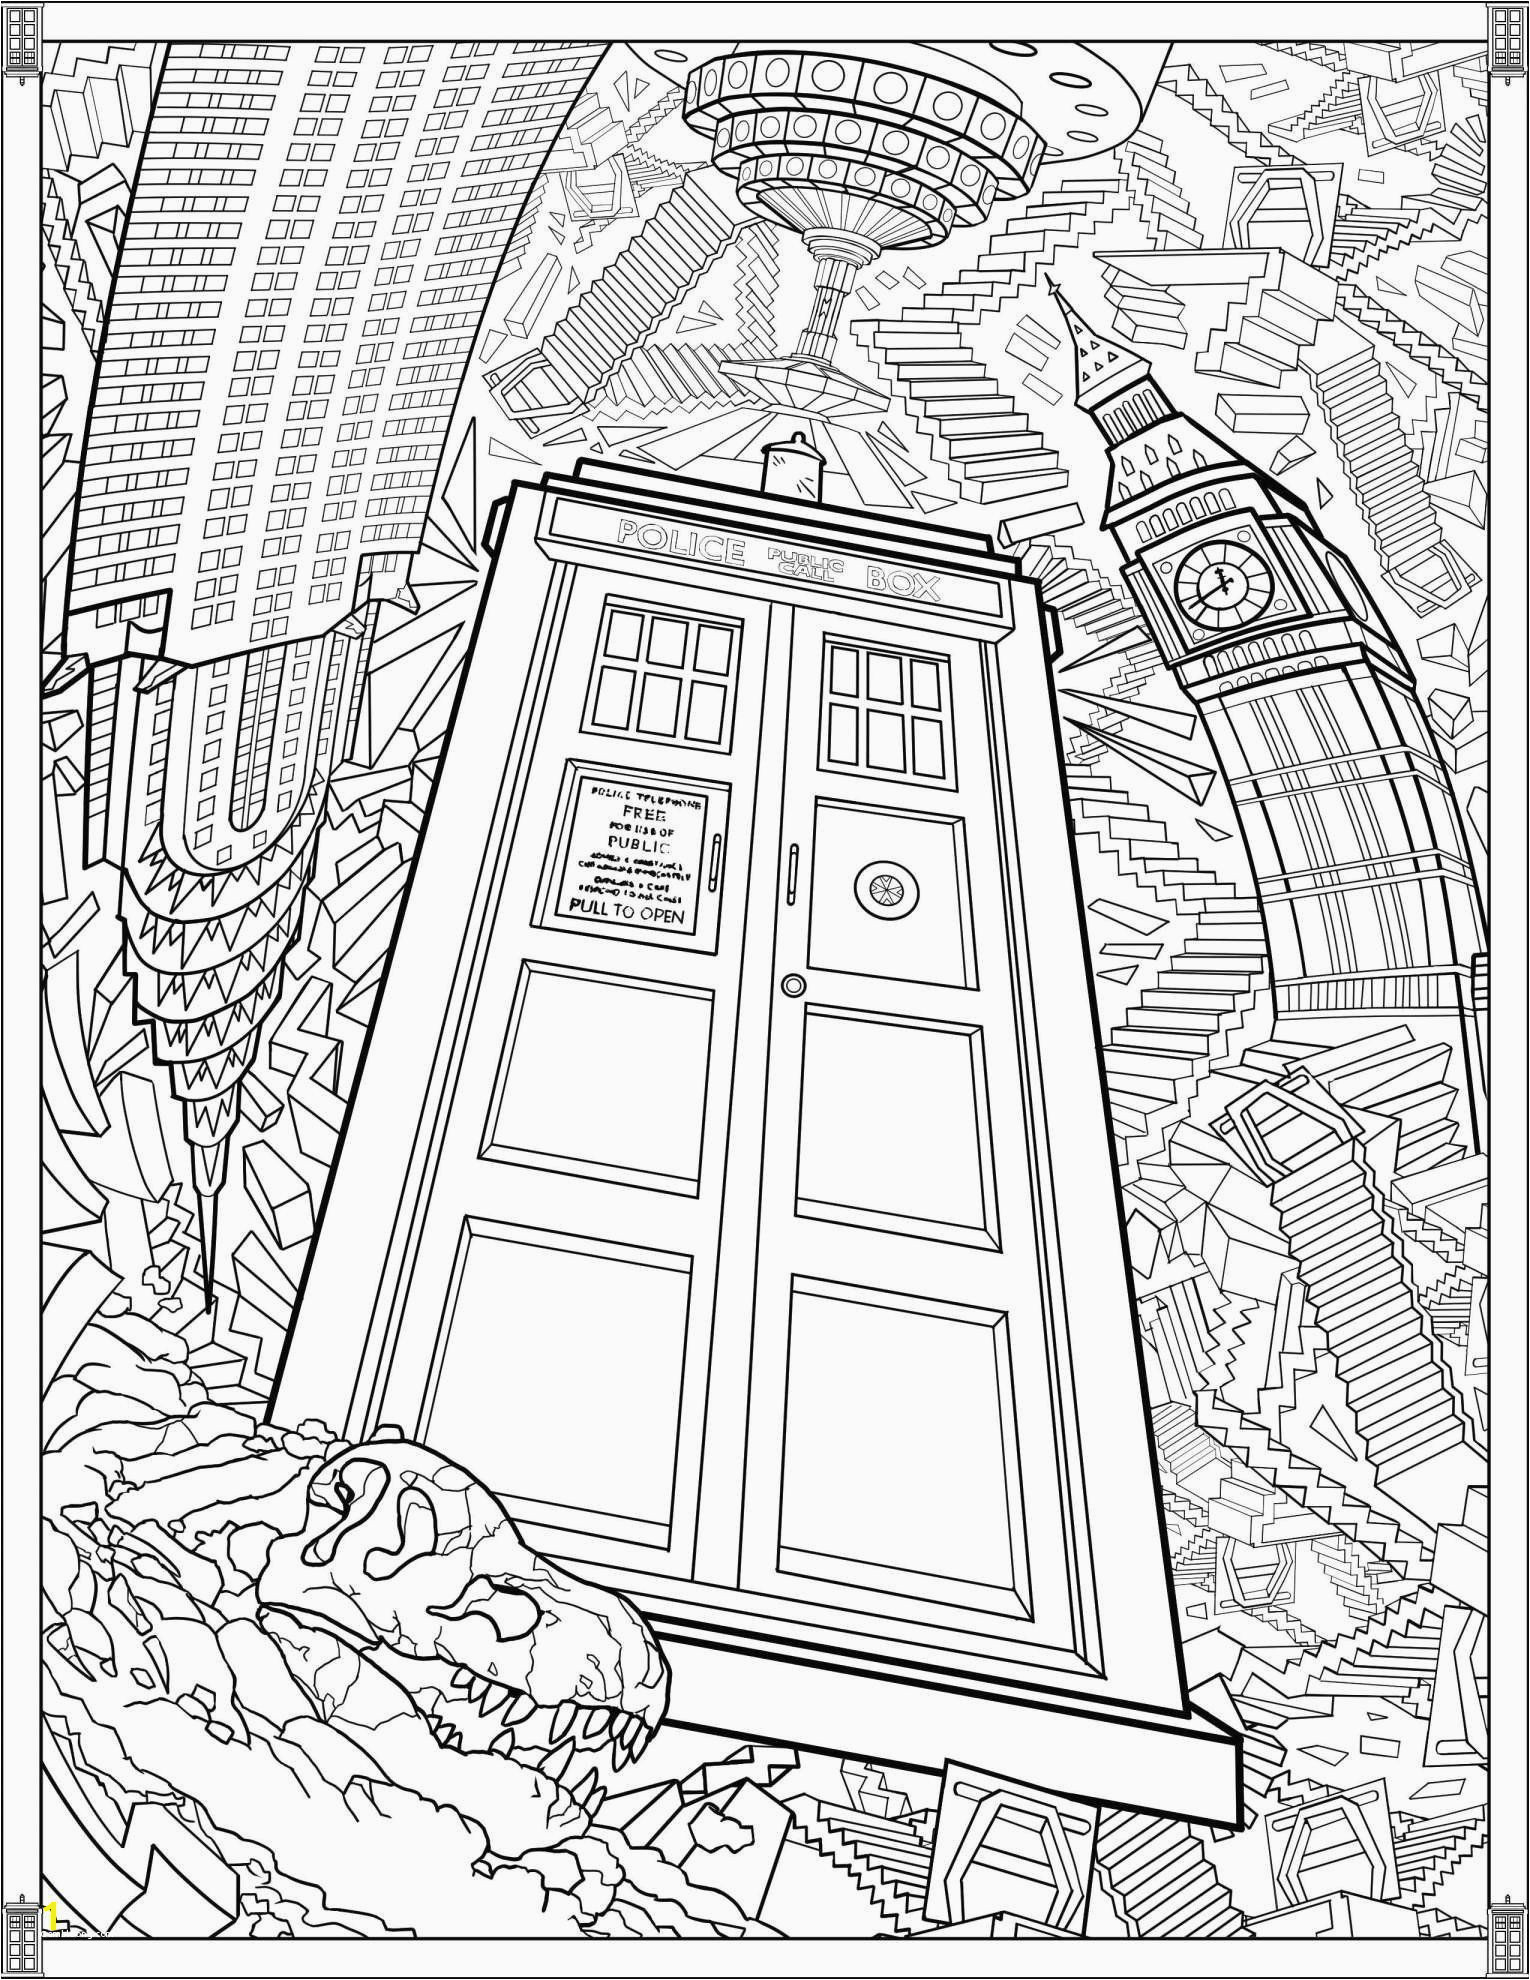 coloring pages for adults with numbers awesome pin auf deko of coloring pages for adults with numbers